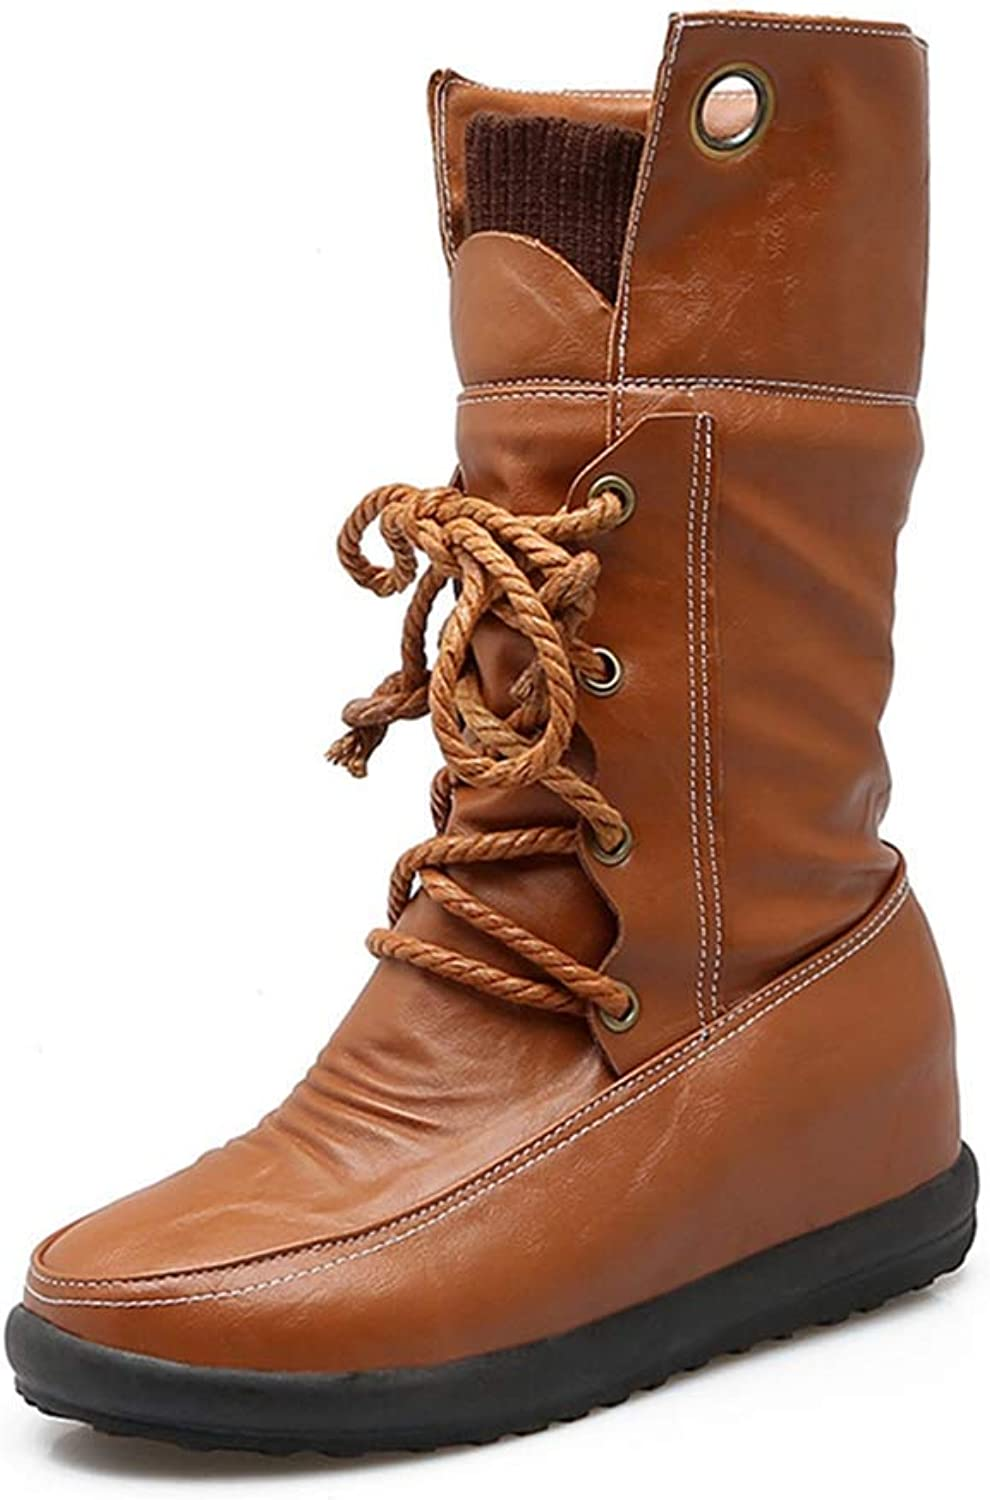 Fashion shoesbox Women's Combat Mid Calf Boots Leather Waterproof Round Toe Lace Up Flat Comfort Wide Calf Riding Boots